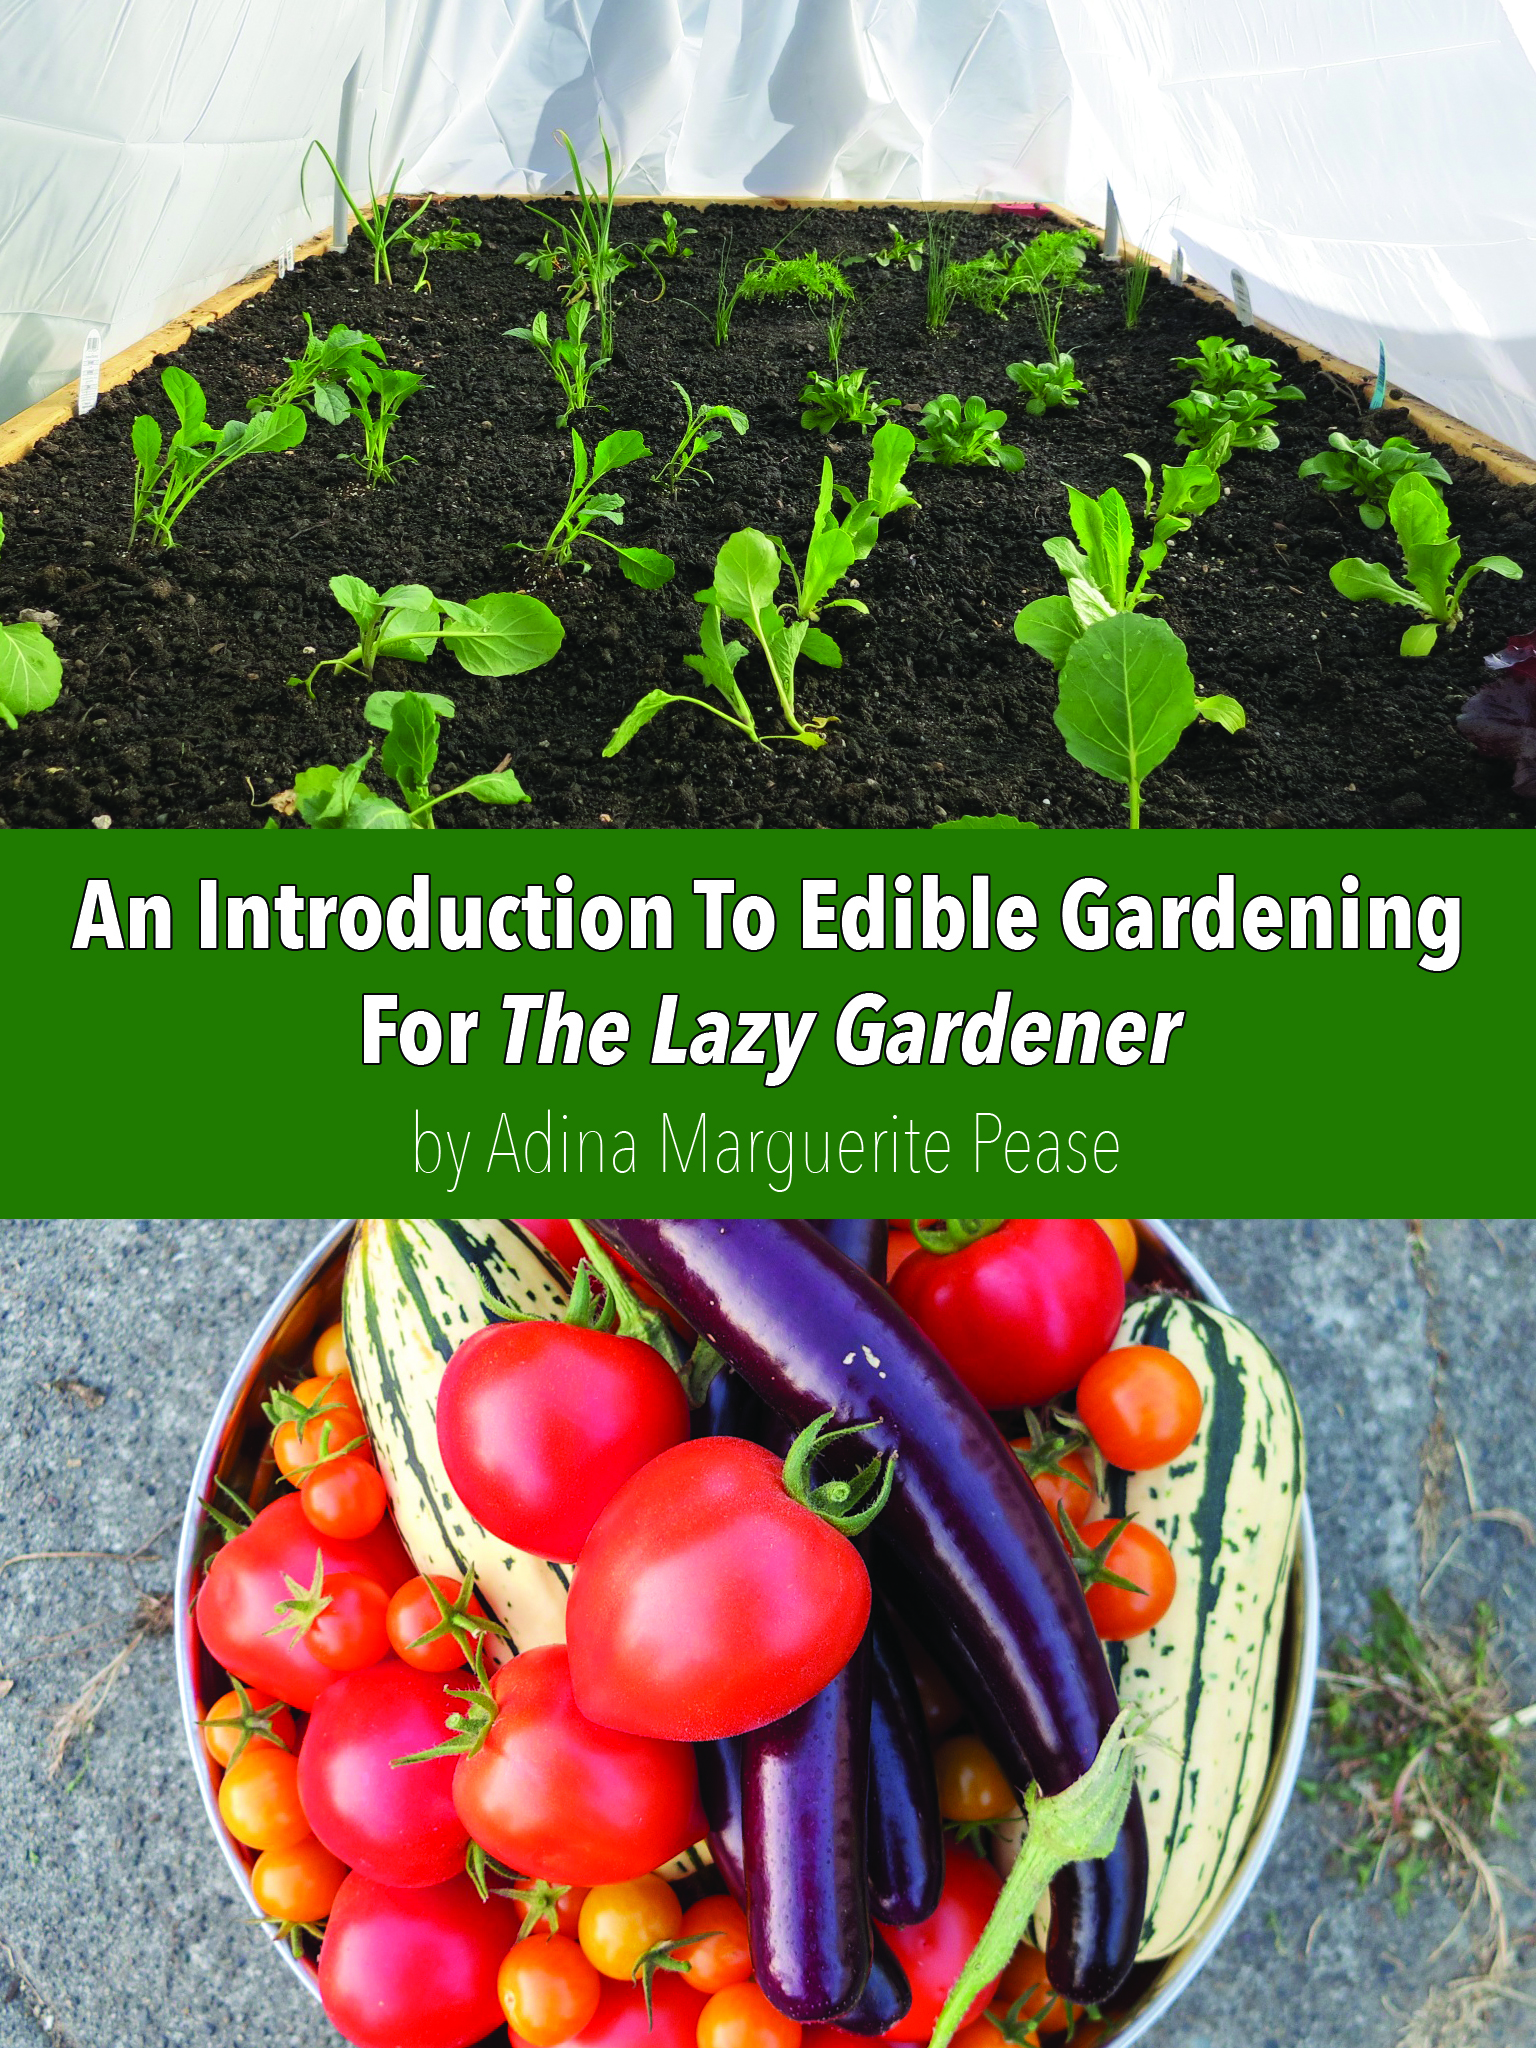 An Introduction To Edible Gardening For The Lazy Gardener